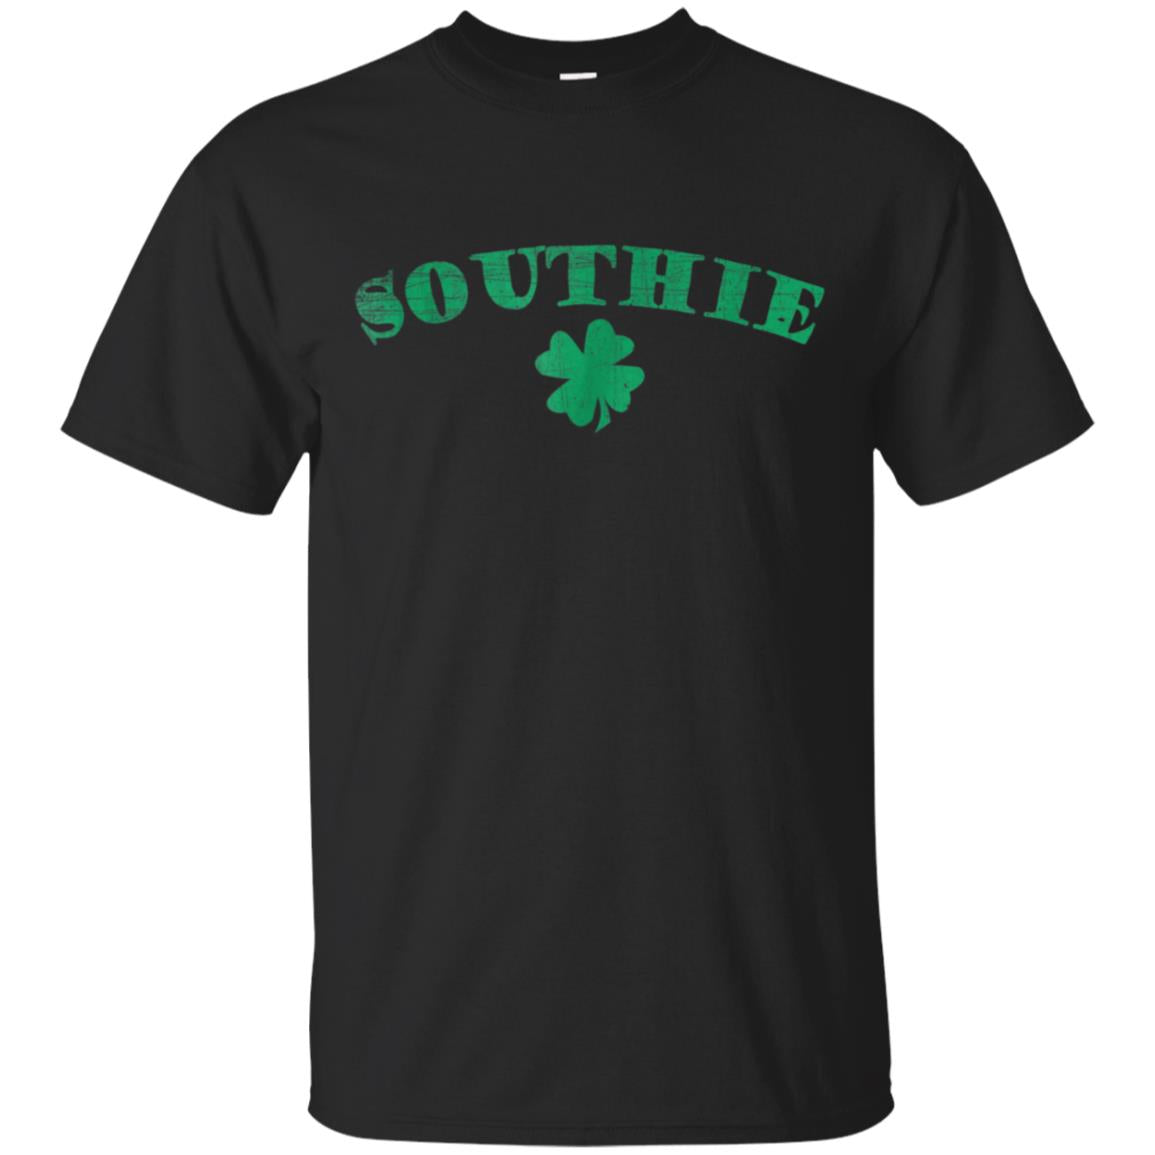 Boston Green Southie Irish Pride T Shirt! 99promocode